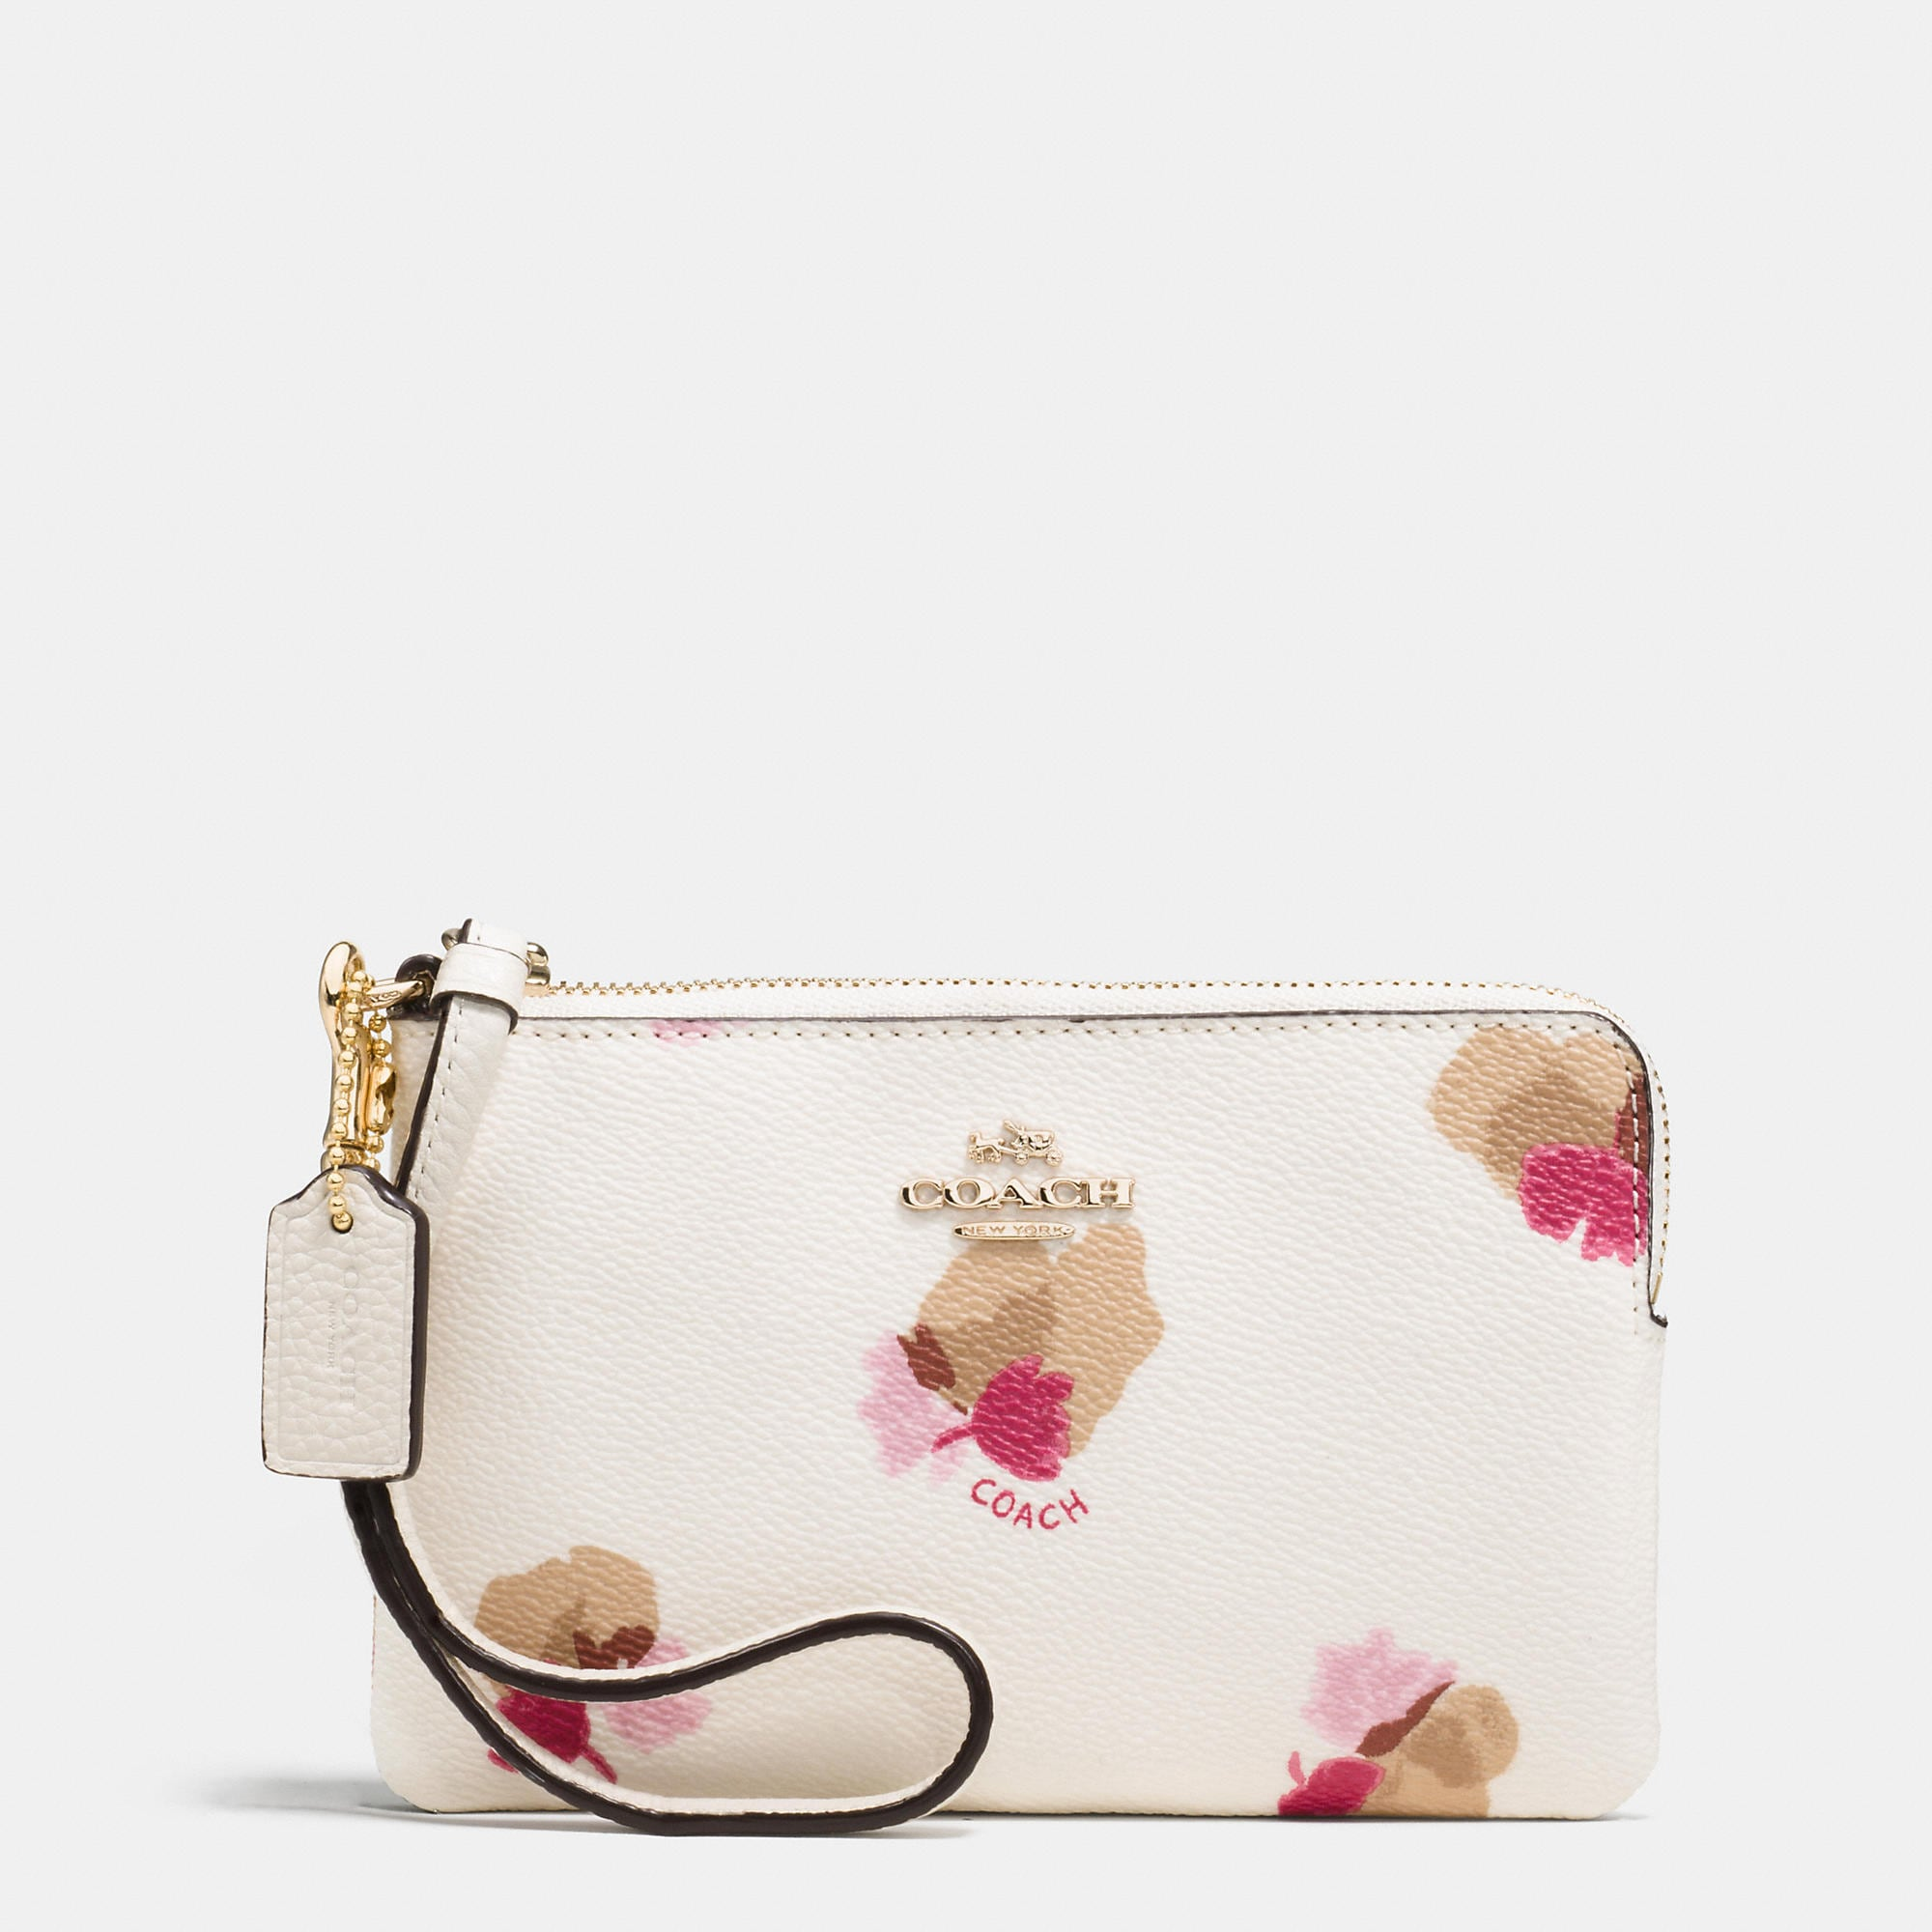 Coach Corner Zip Wristlet In Floral Print Coated Canvas